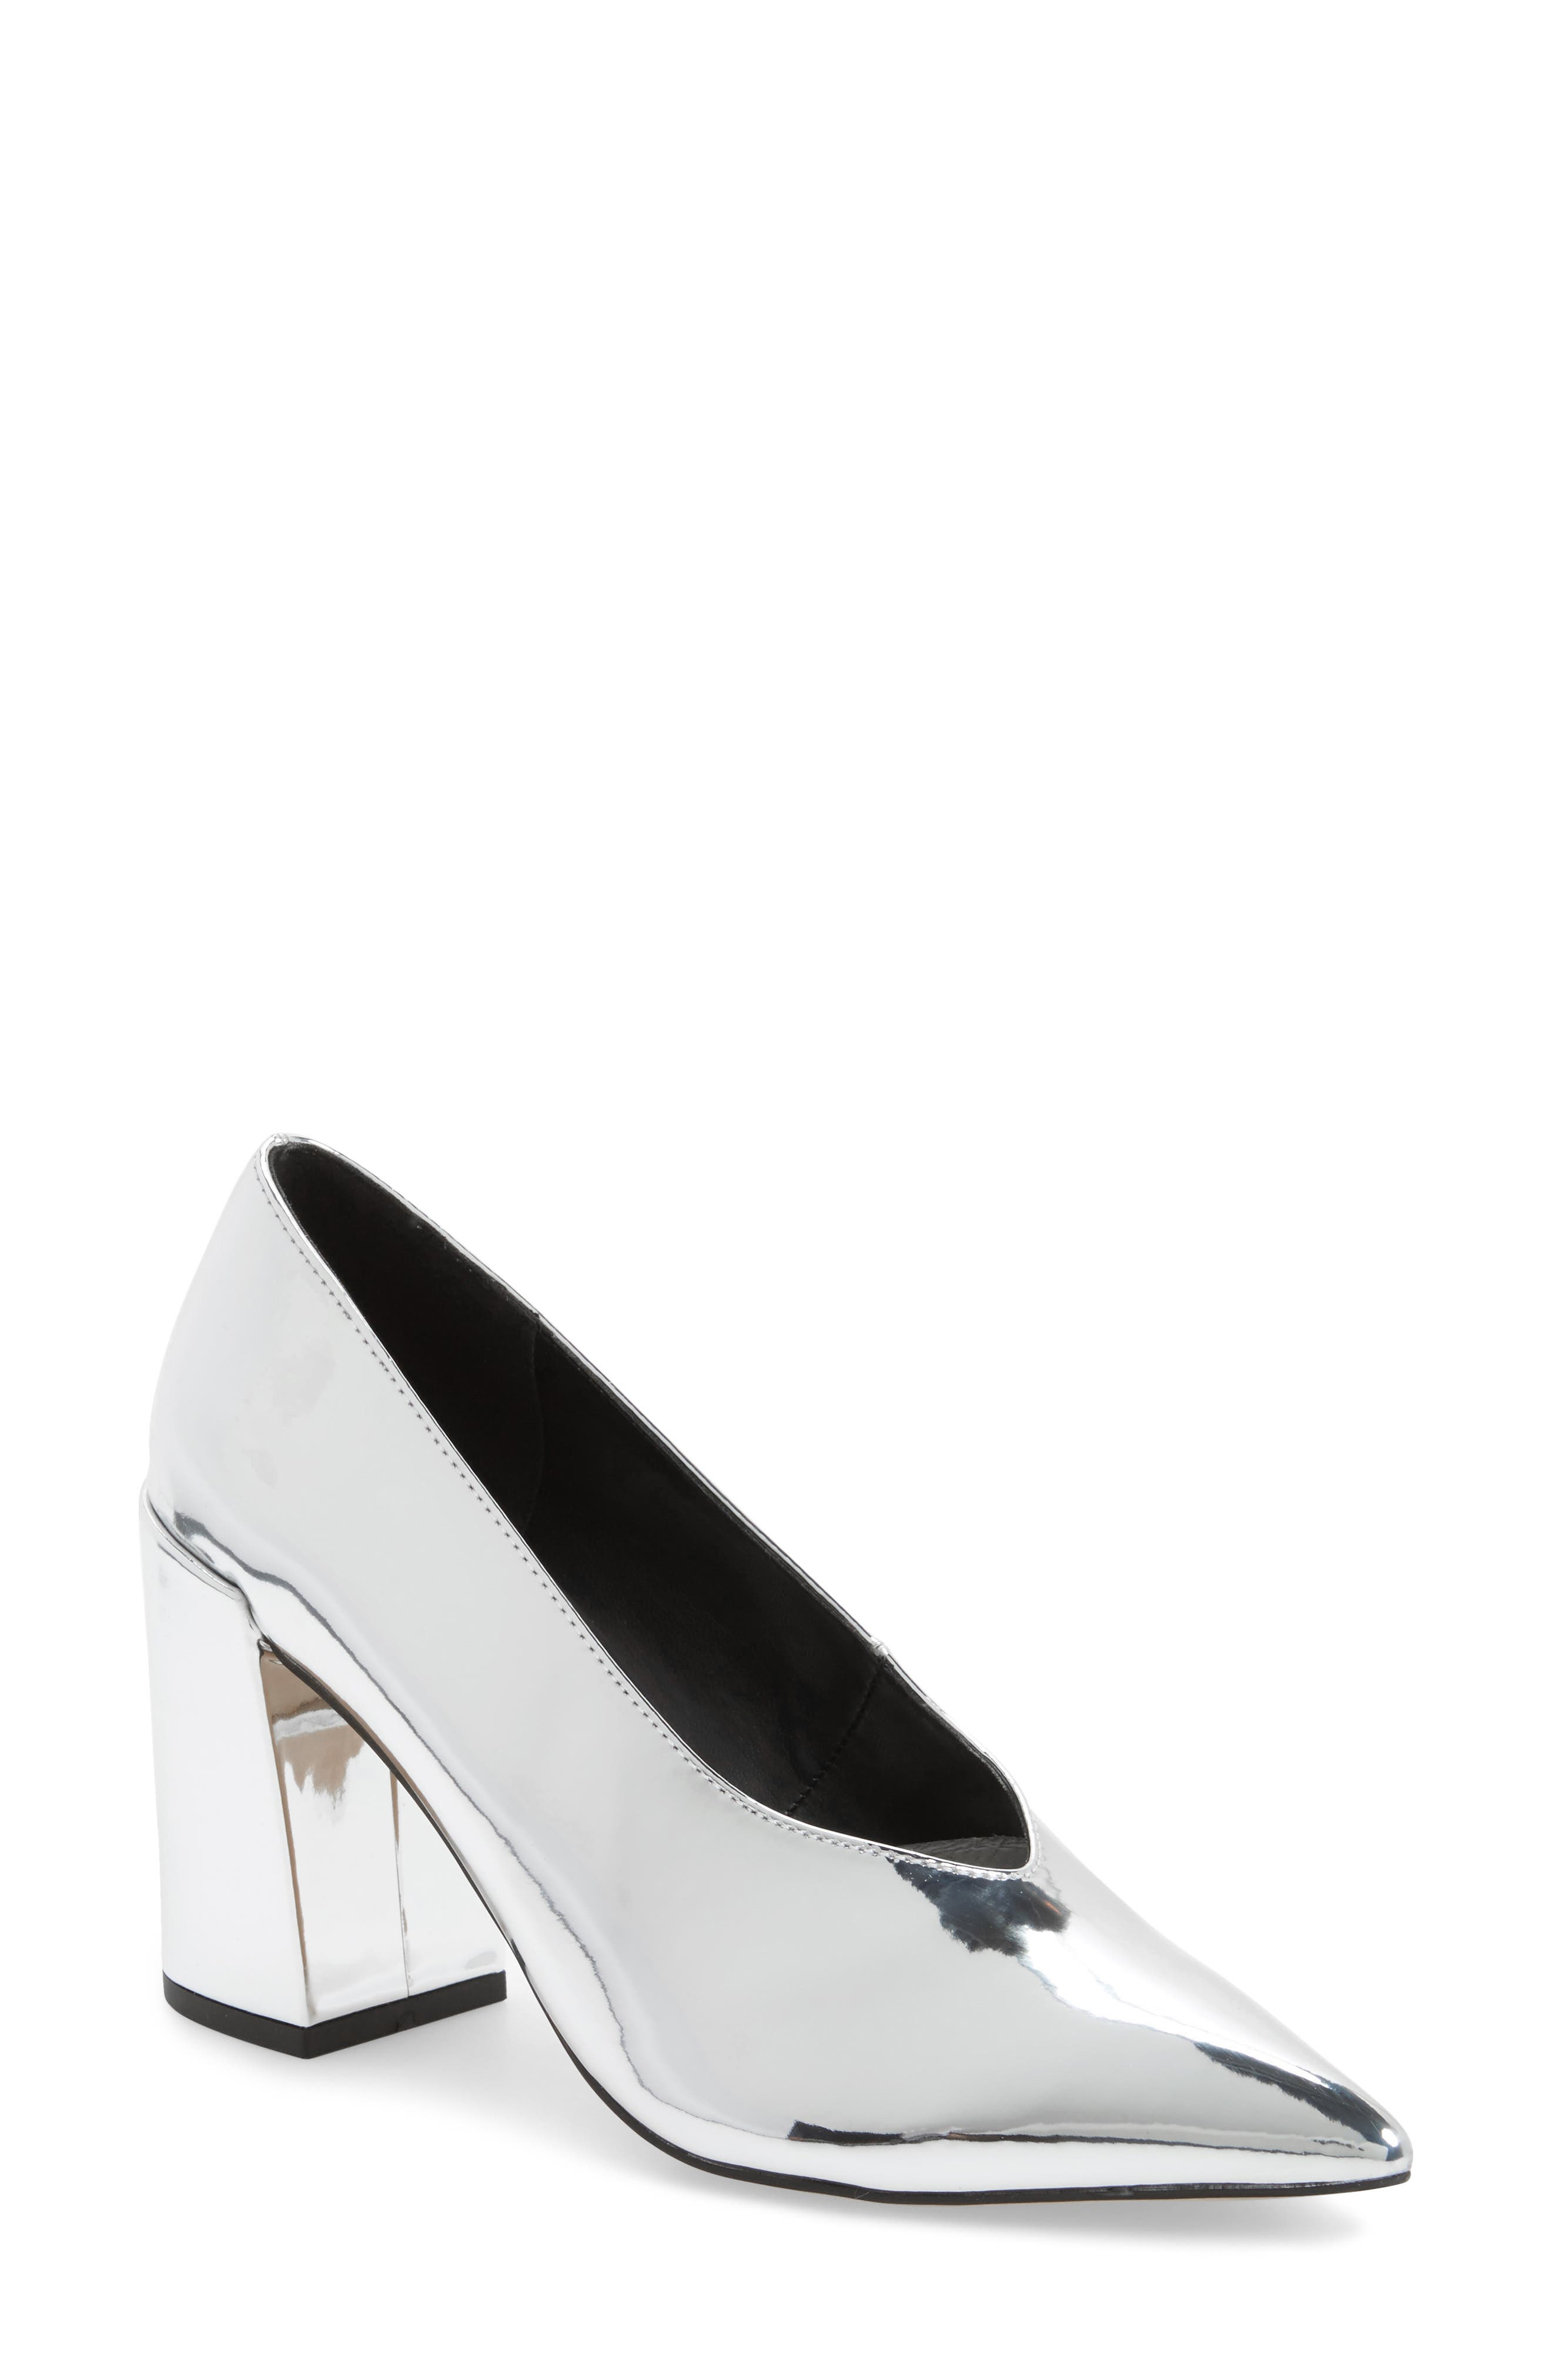 Main Image - Topshop Greatal Pointy Toe Pump (Women)